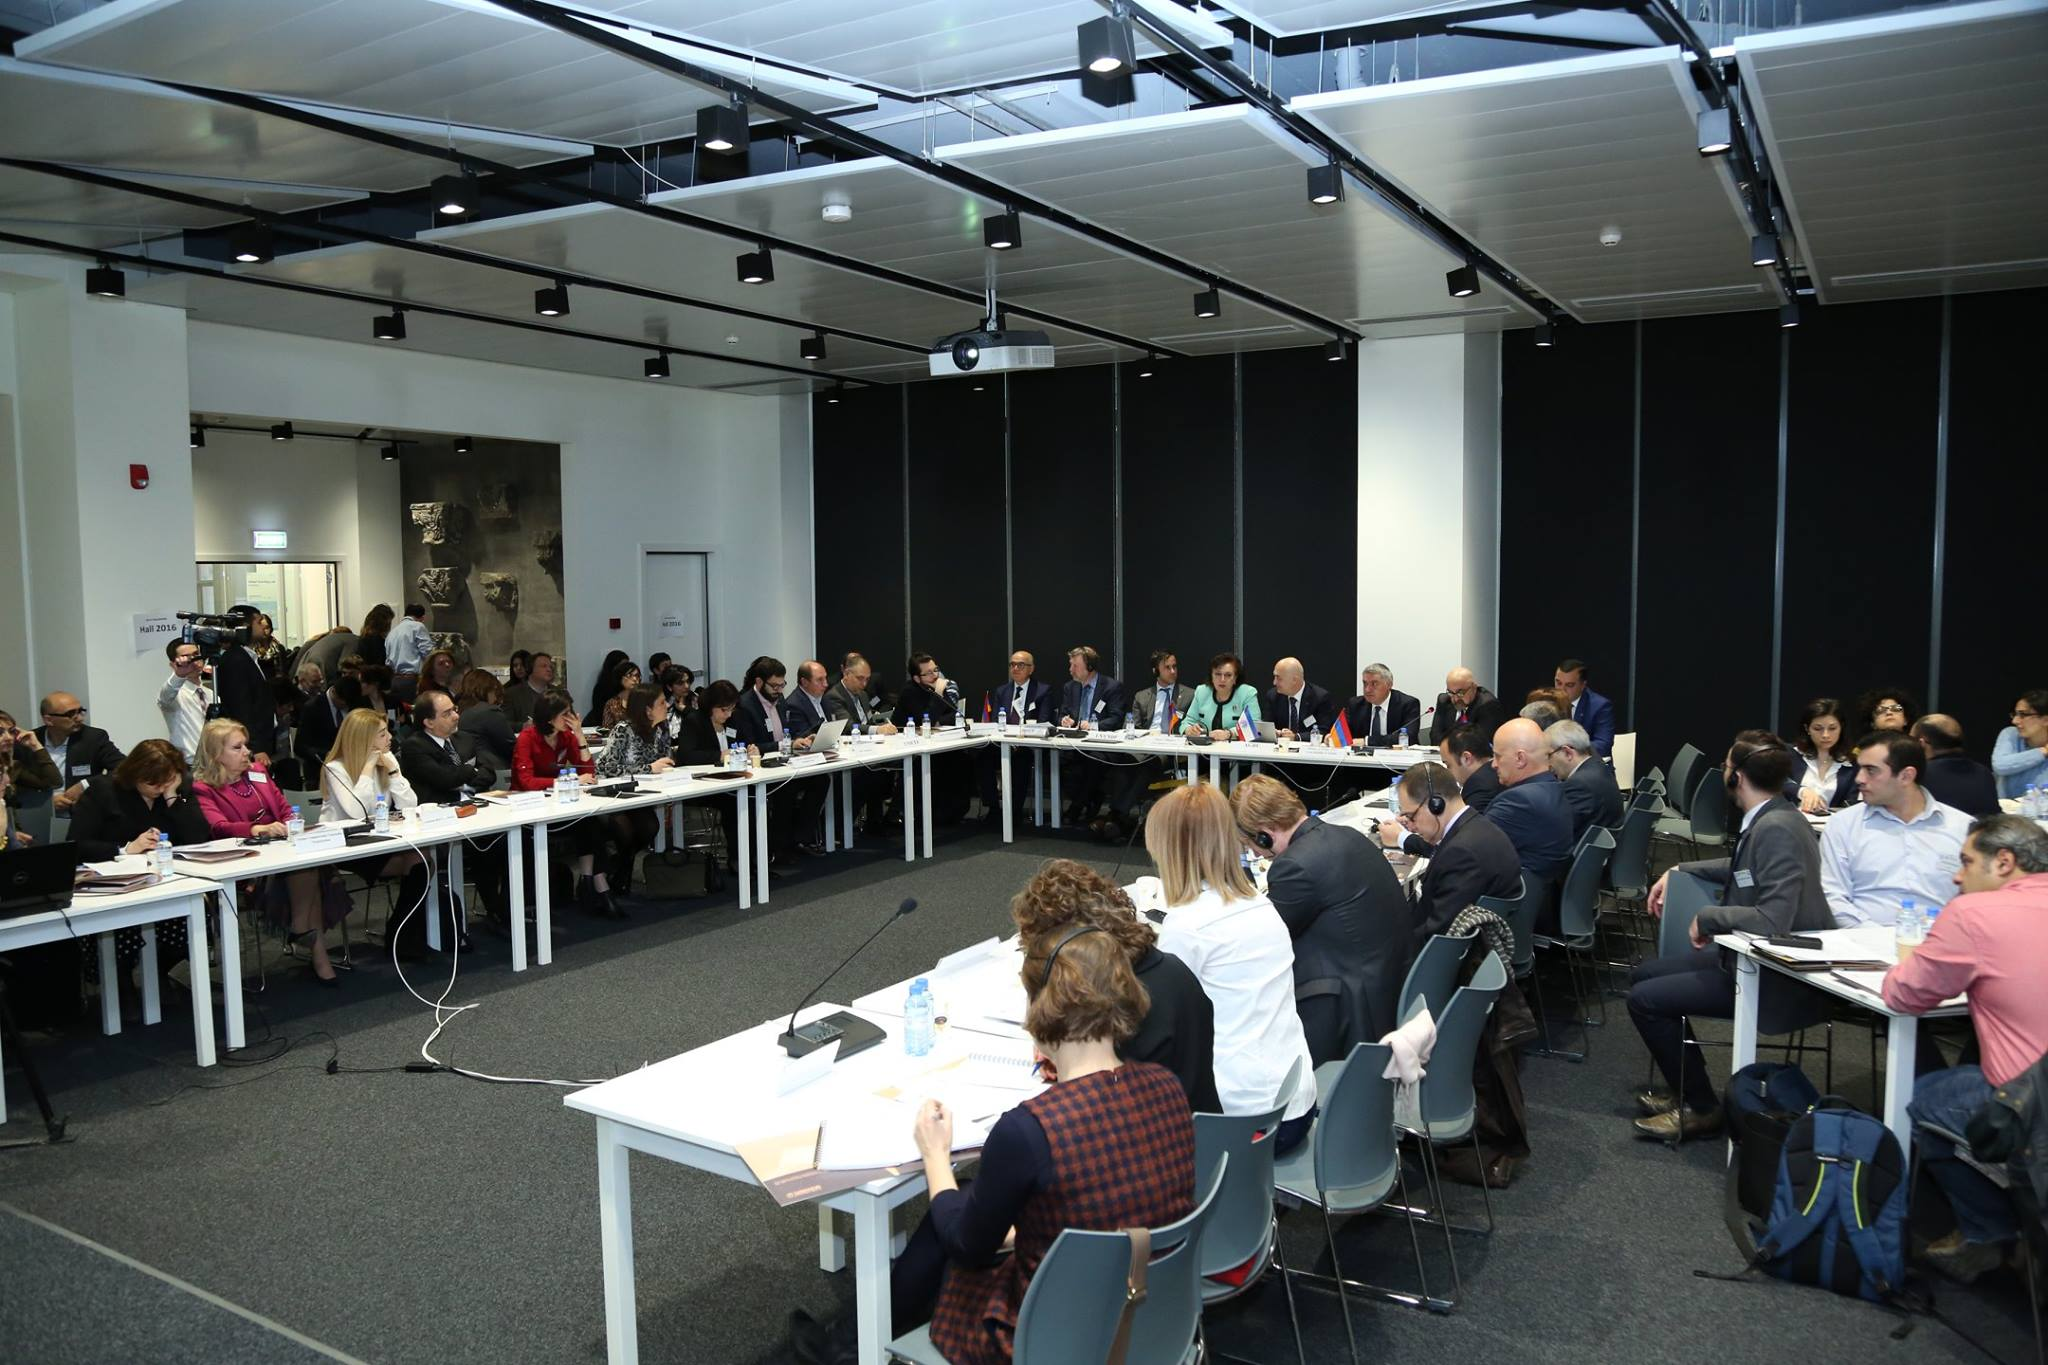 The view of the 1 day workshop which was hosted at the new AGBU building in Yerevan. Photo credit AGBU Yerevan